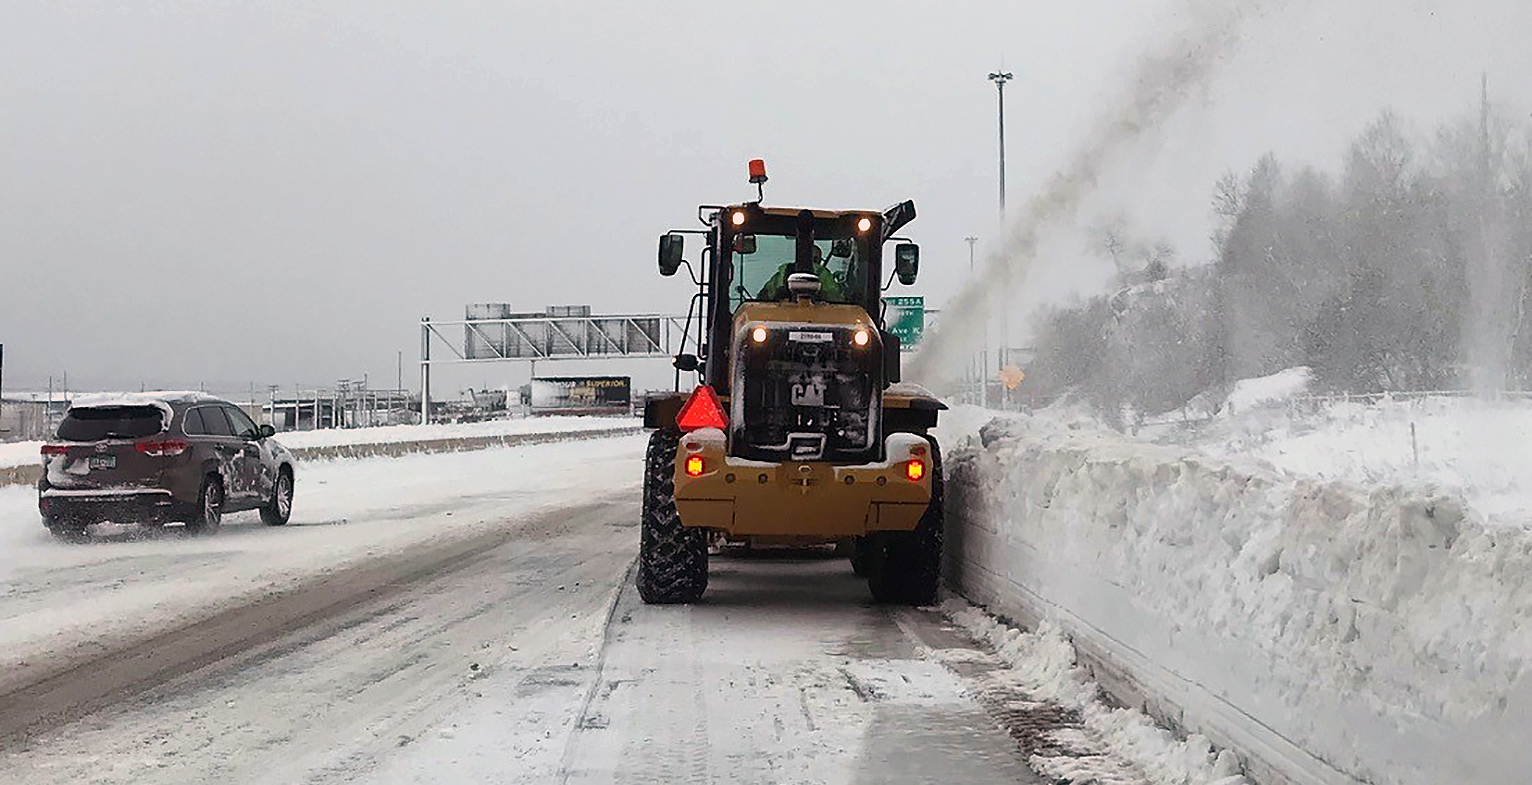 This photo shows a large snowblower blowing snow on the side of I-35. The snow to the right of the blower is close to four feet tall.